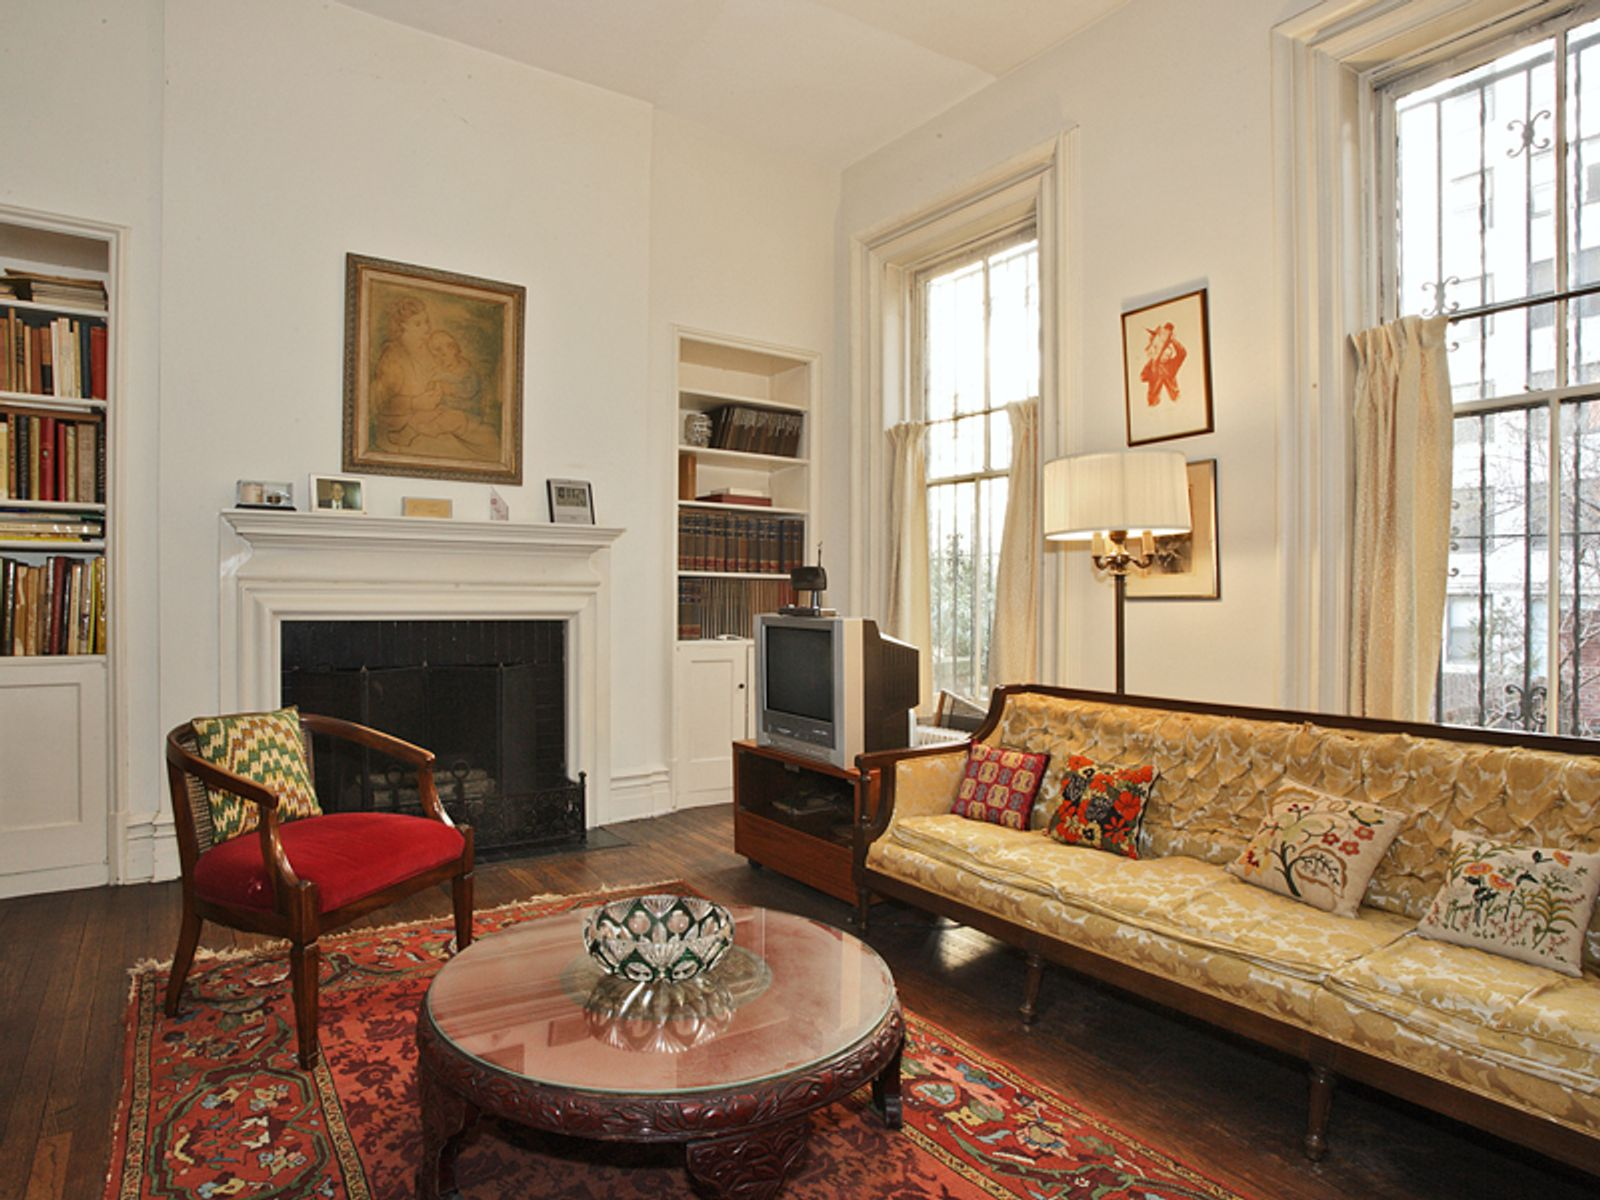 Single Family Townhouse, New York NY Townhouse - New York City Real Estate